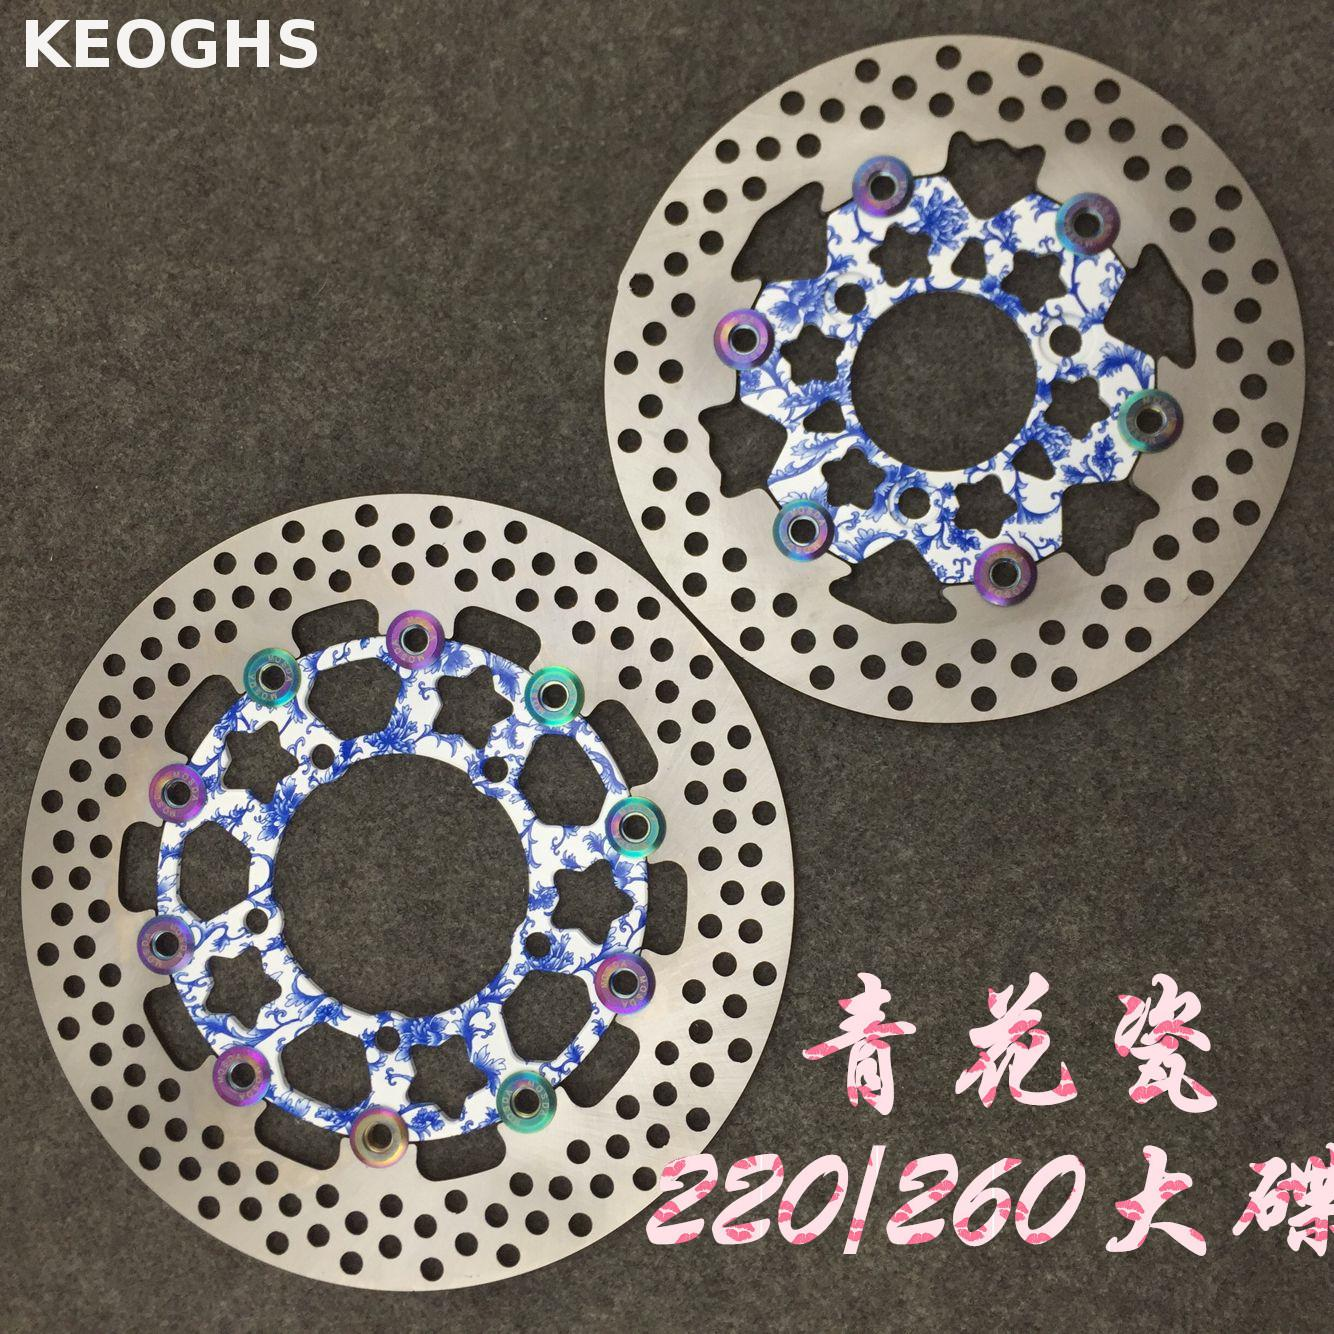 Keoghs Motorcycle Brake Disc 220mm 260mm White And Blue Chinese Style For Yamaha Scooter Cygnus modify keoghs motorcycle rear hydraulic disc brake set diy modify cnc rpm brake pumb for yamaha scooter dirt bike motorcross motorbike